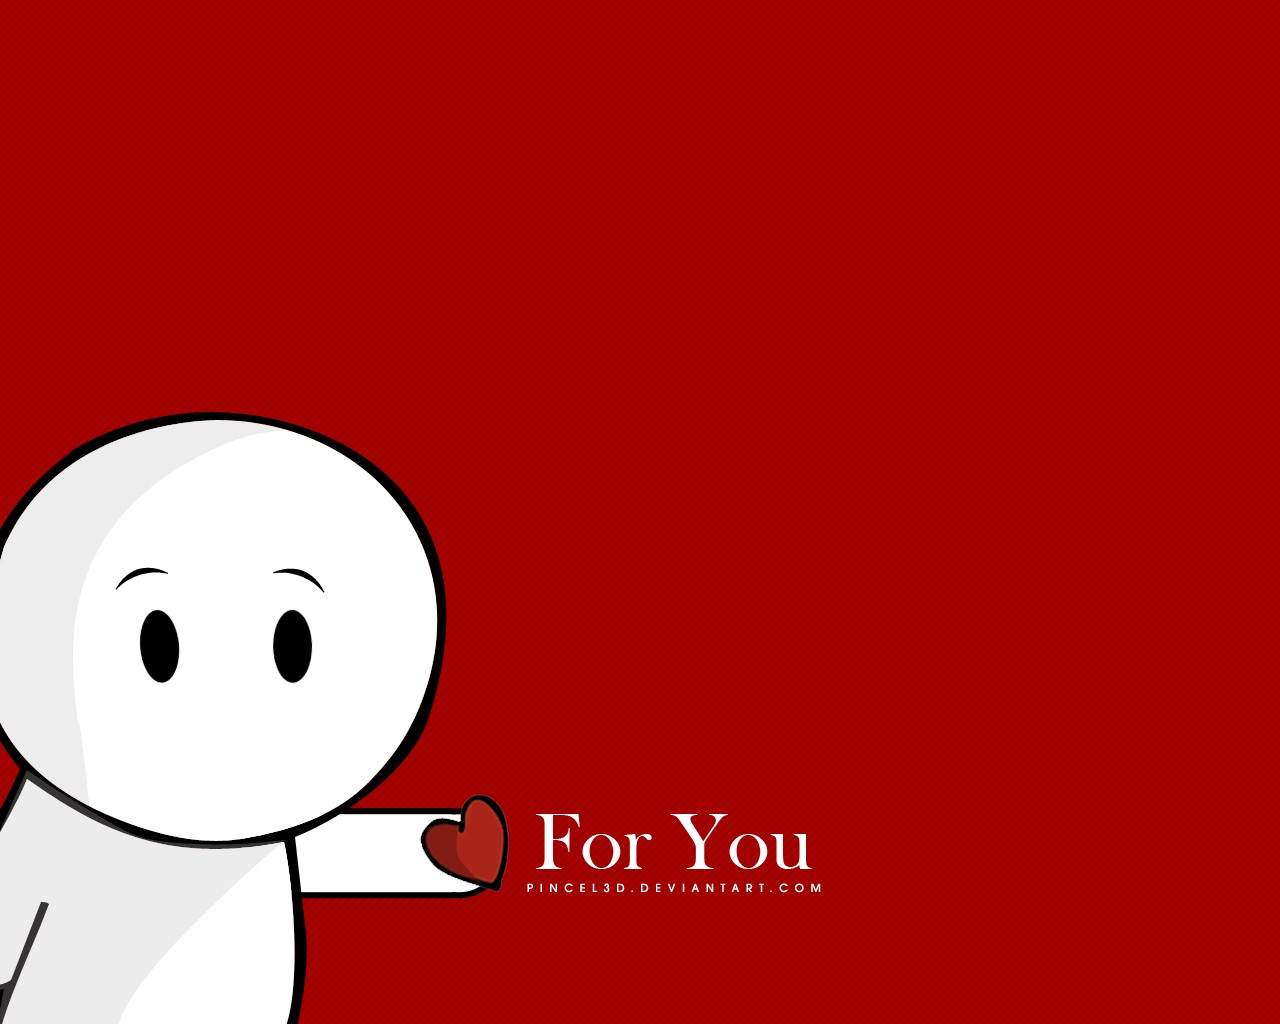 L Love You Hd Wallpaper : I Love You Wallpapers HD A17 - HD Desktop Wallpapers 4k HD